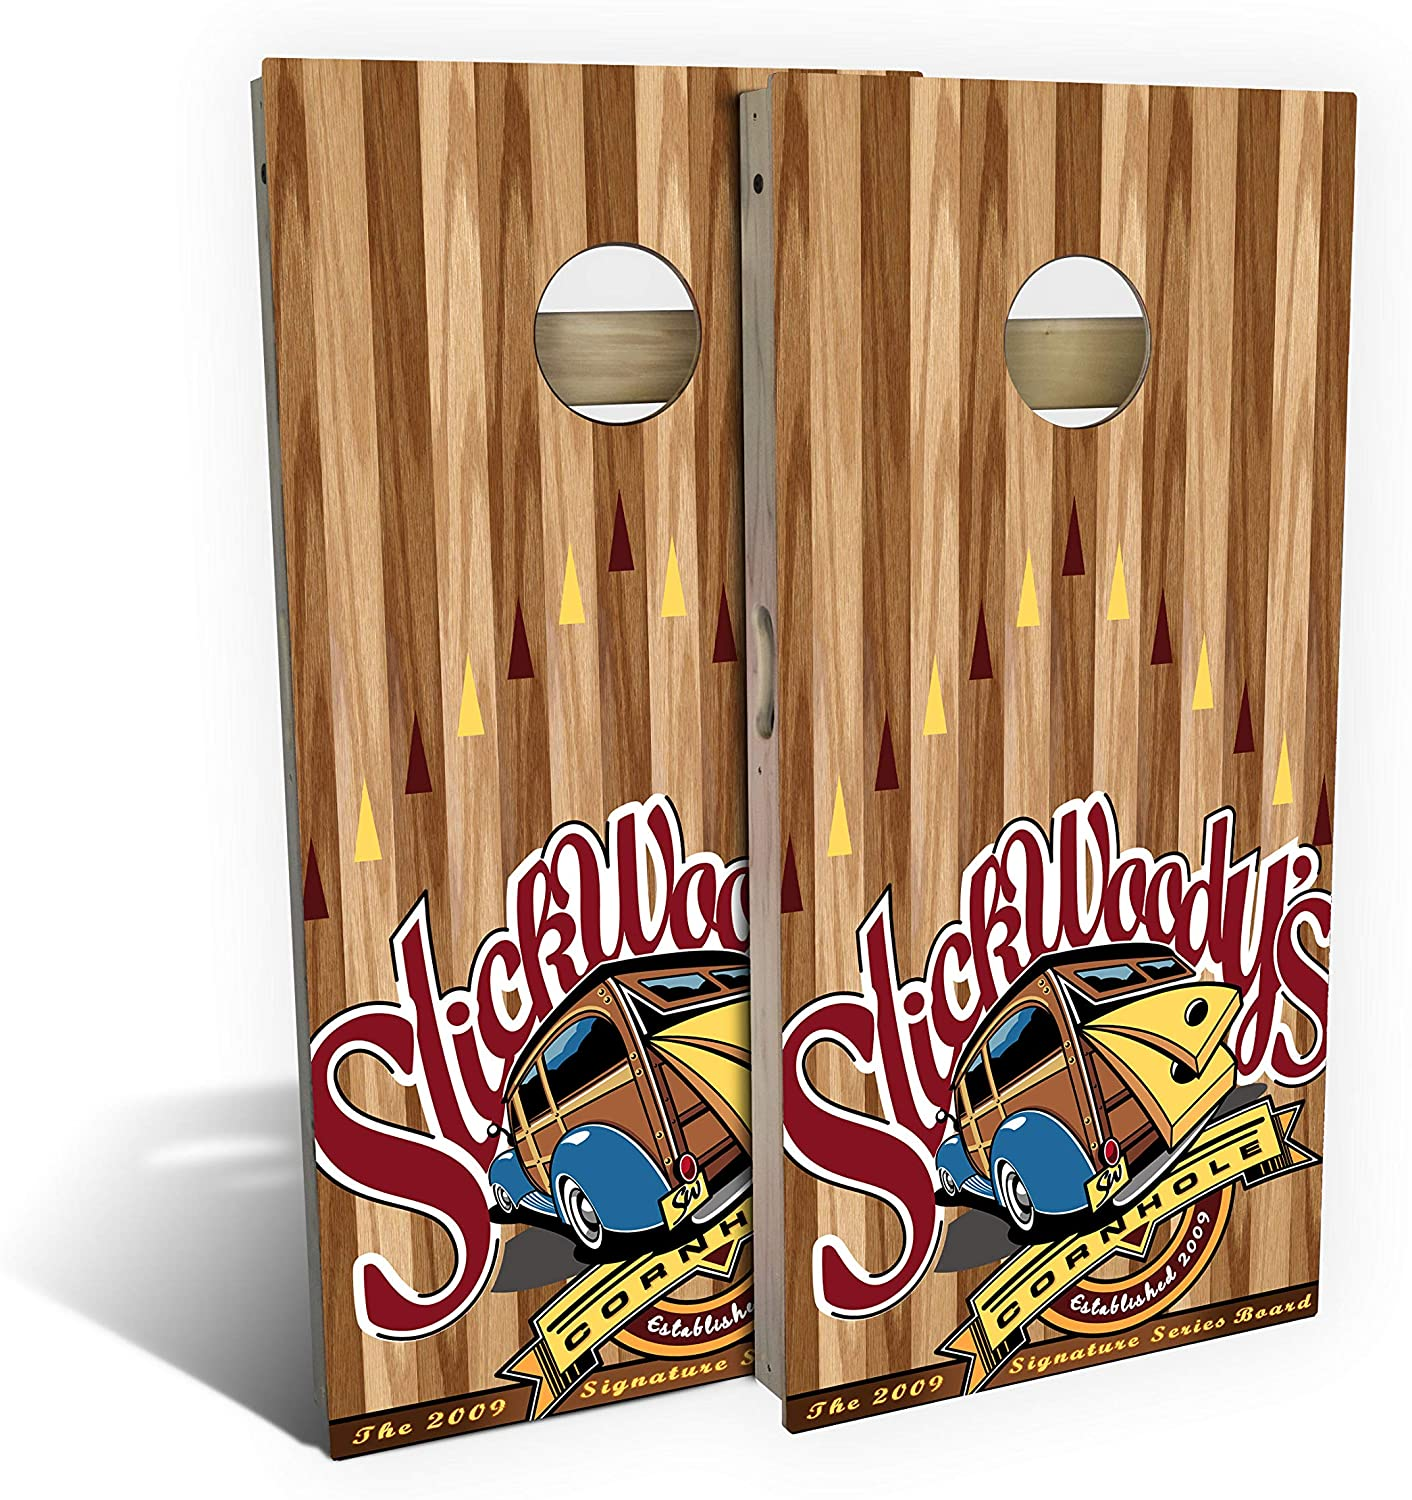 Slick WOODYS Signature Cornhole Set with 8 Cornhole Bags, Baltic Birch Plywood Tops for The Smoothest Flattest Playing Surface, Retractable Legs and Back Bounce Brace